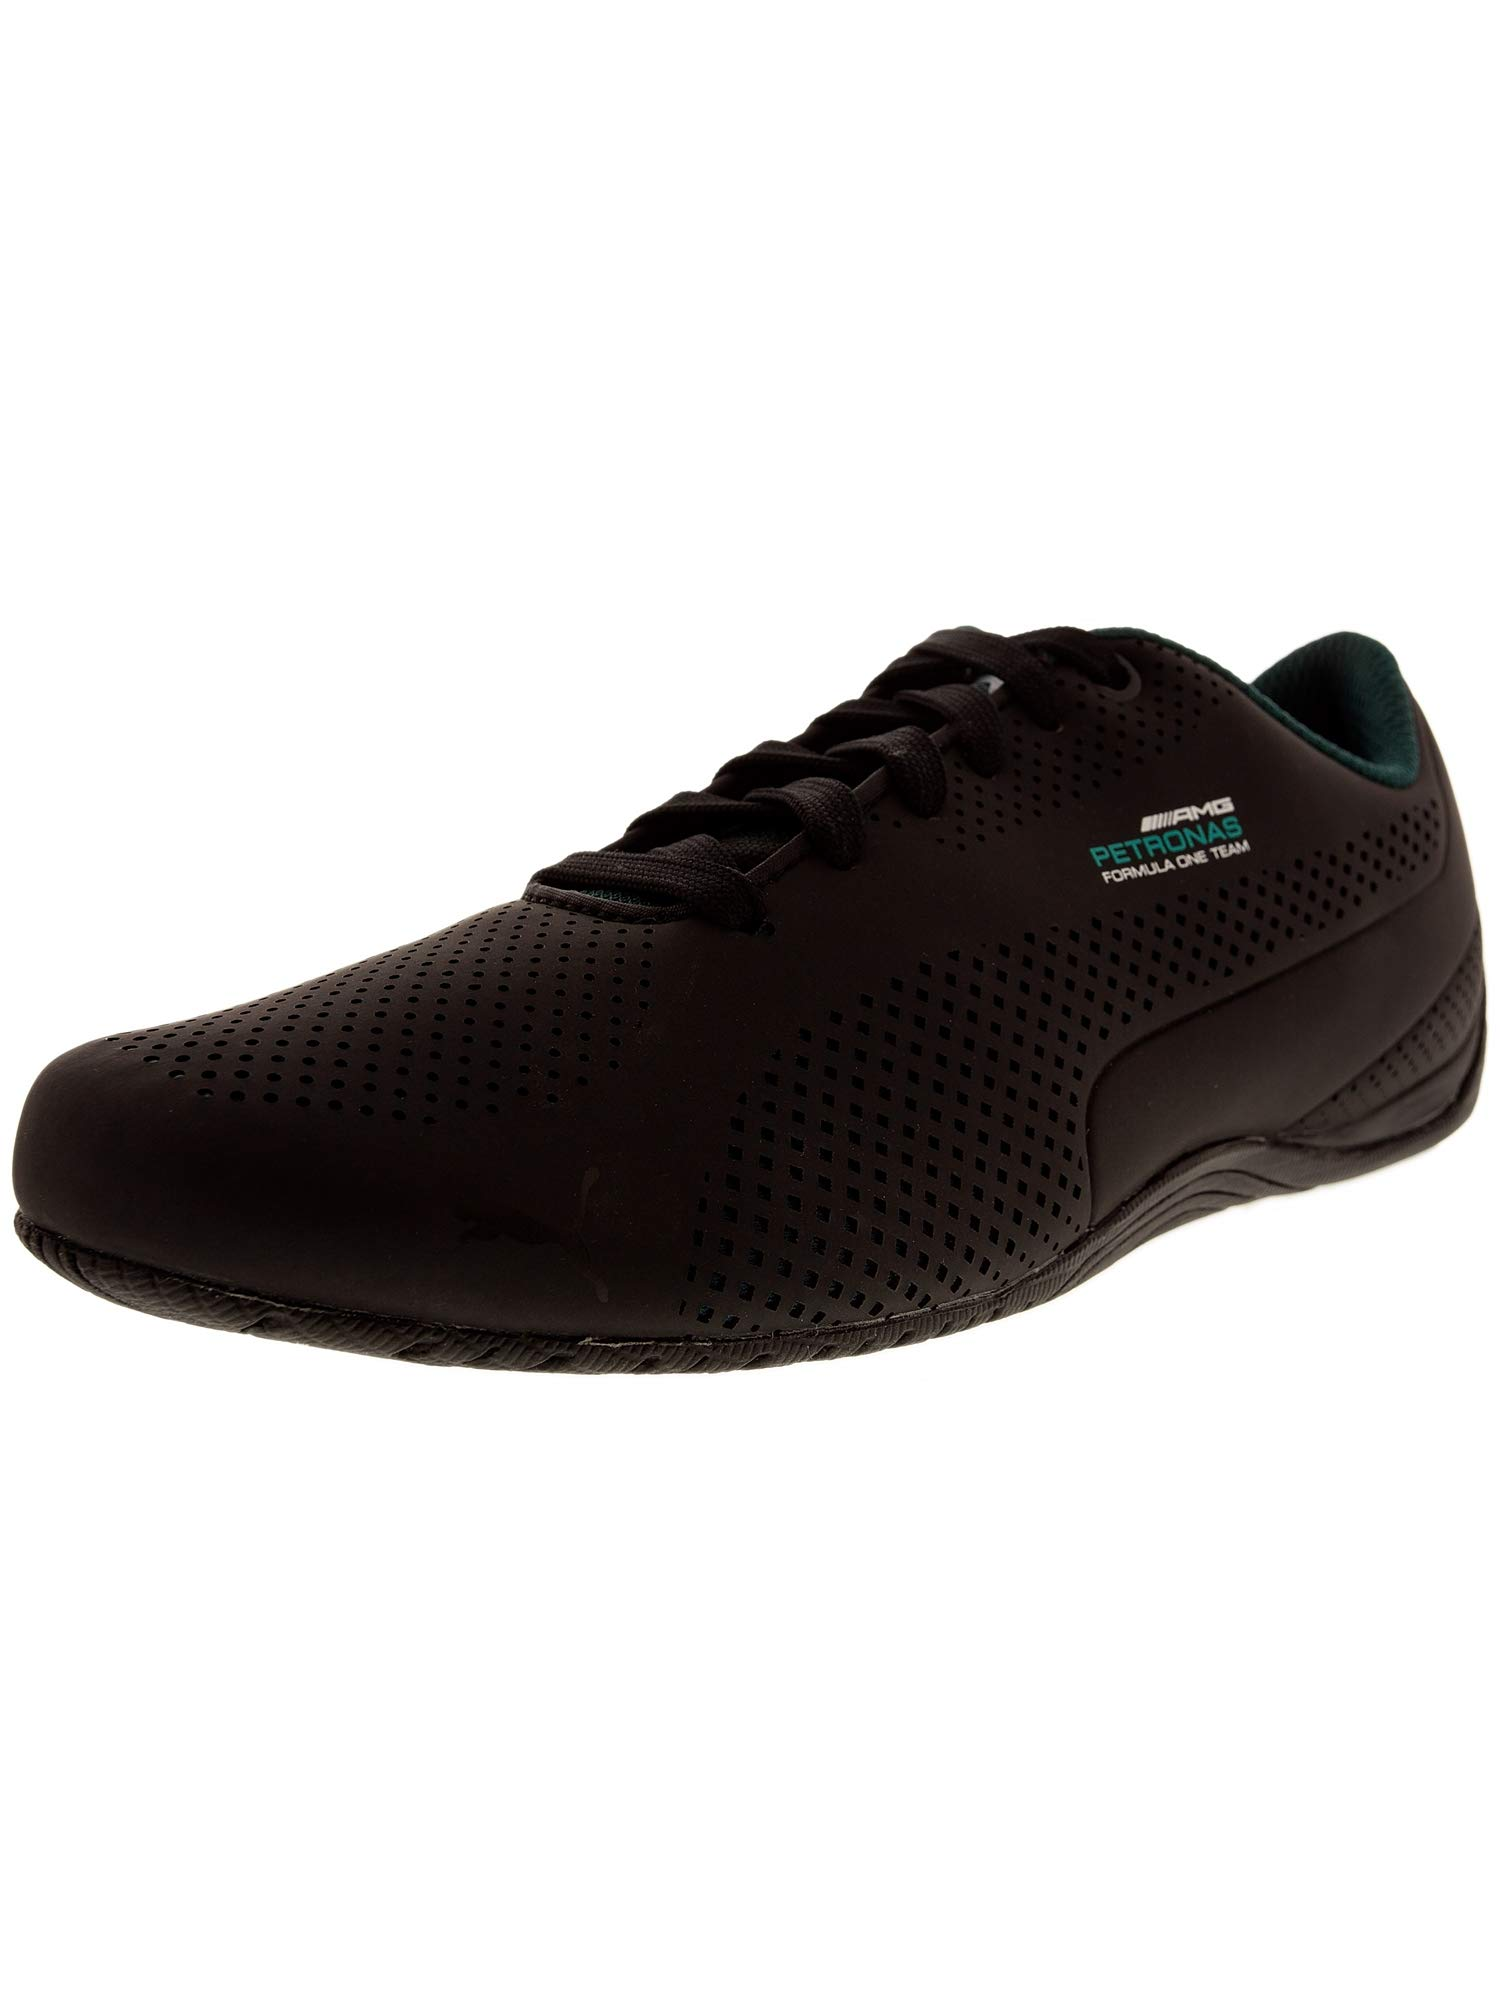 subasta yo Automatización  Puma Mercedes AMG Petronas Drift Cat 5 Ultra 305978 01 Mens Sneakers/Casual  Shoes/Trainers White- Buy Online in Guernsey at guernsey.desertcart.com.  ProductId : 129489071.